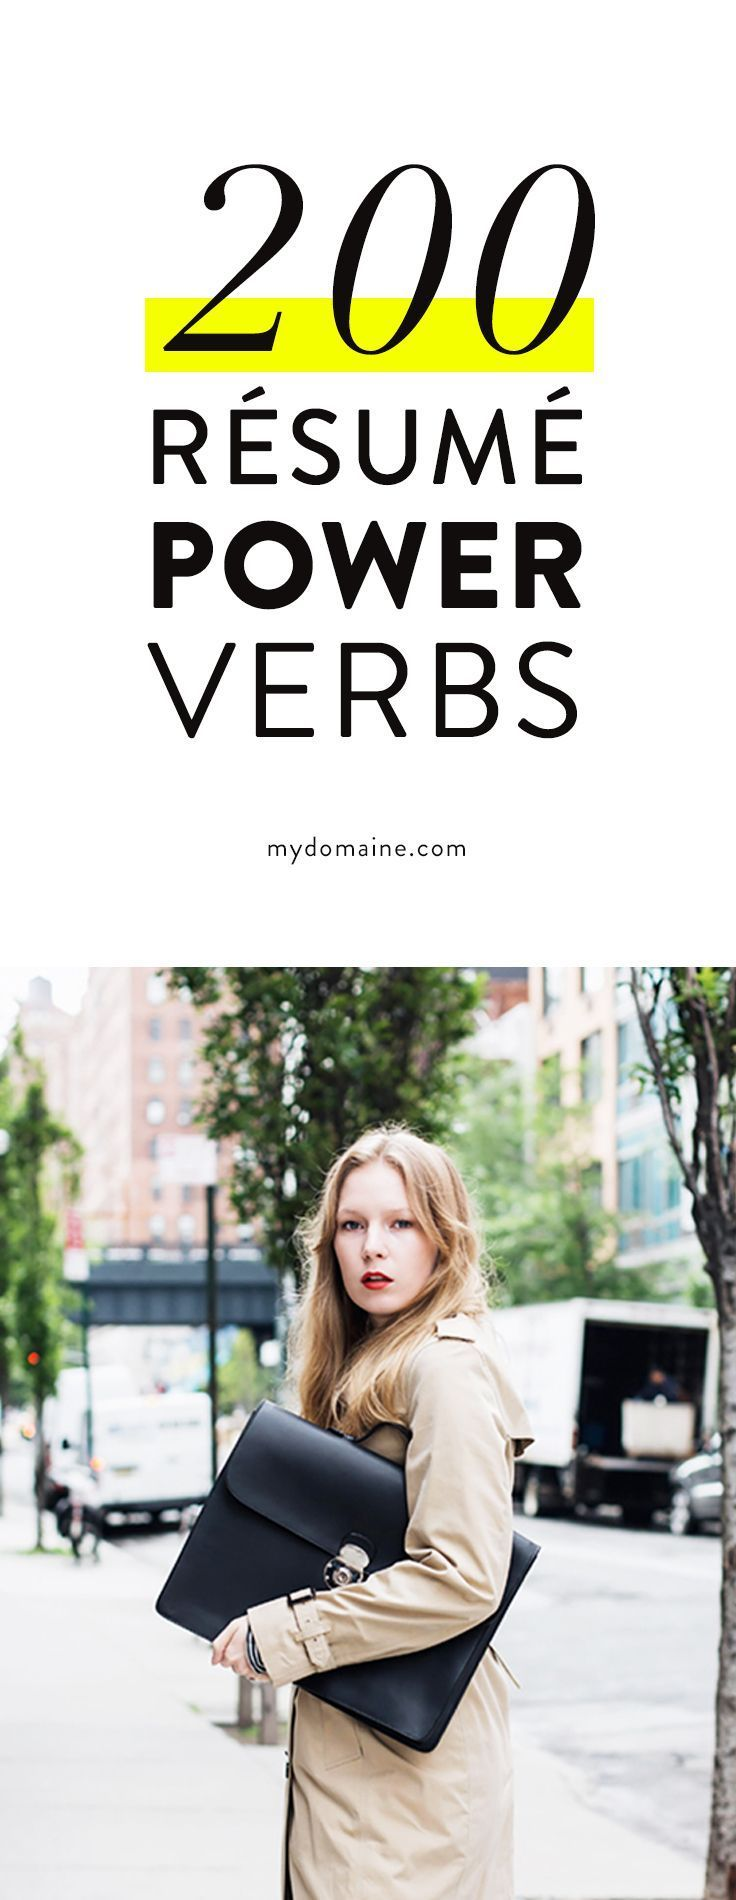 200 resume power verbs verbs are one of the most important